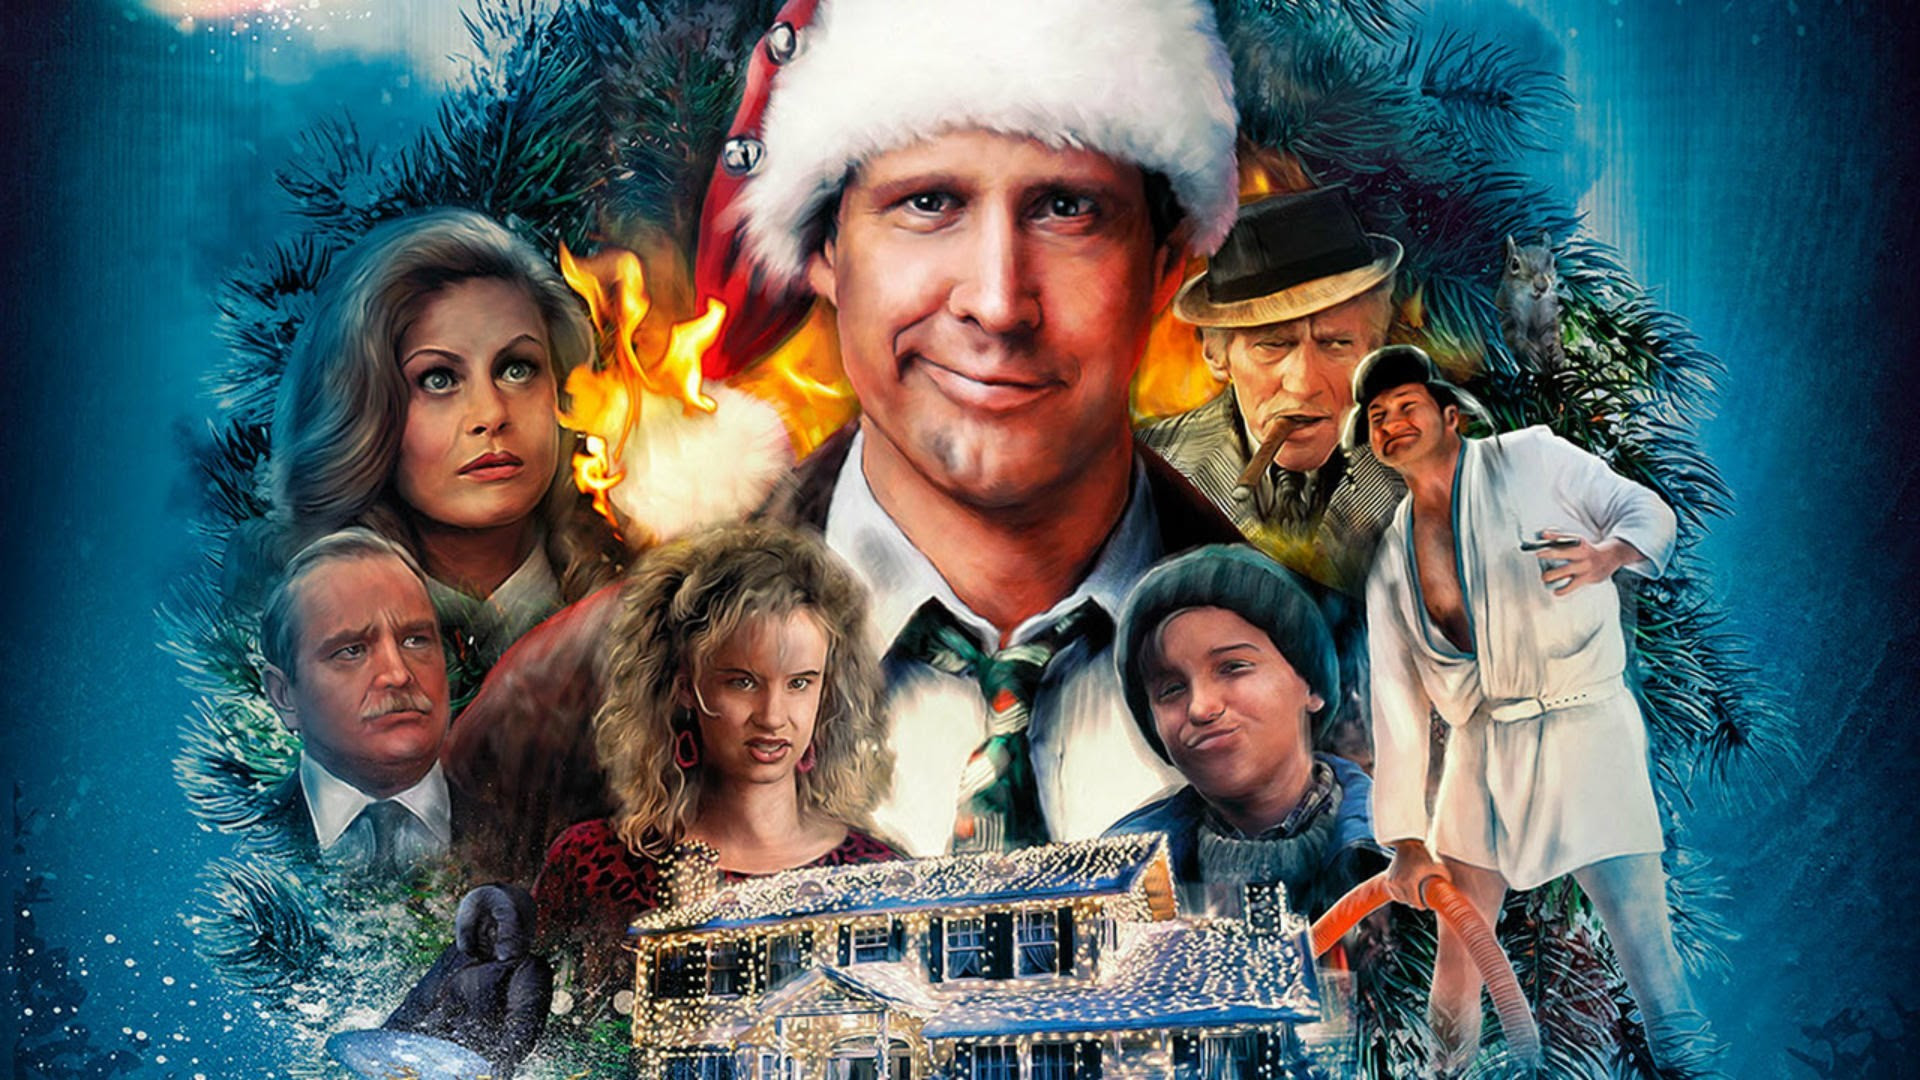 National Lampoons Christmas Vacation Wallpaper (78+ images)